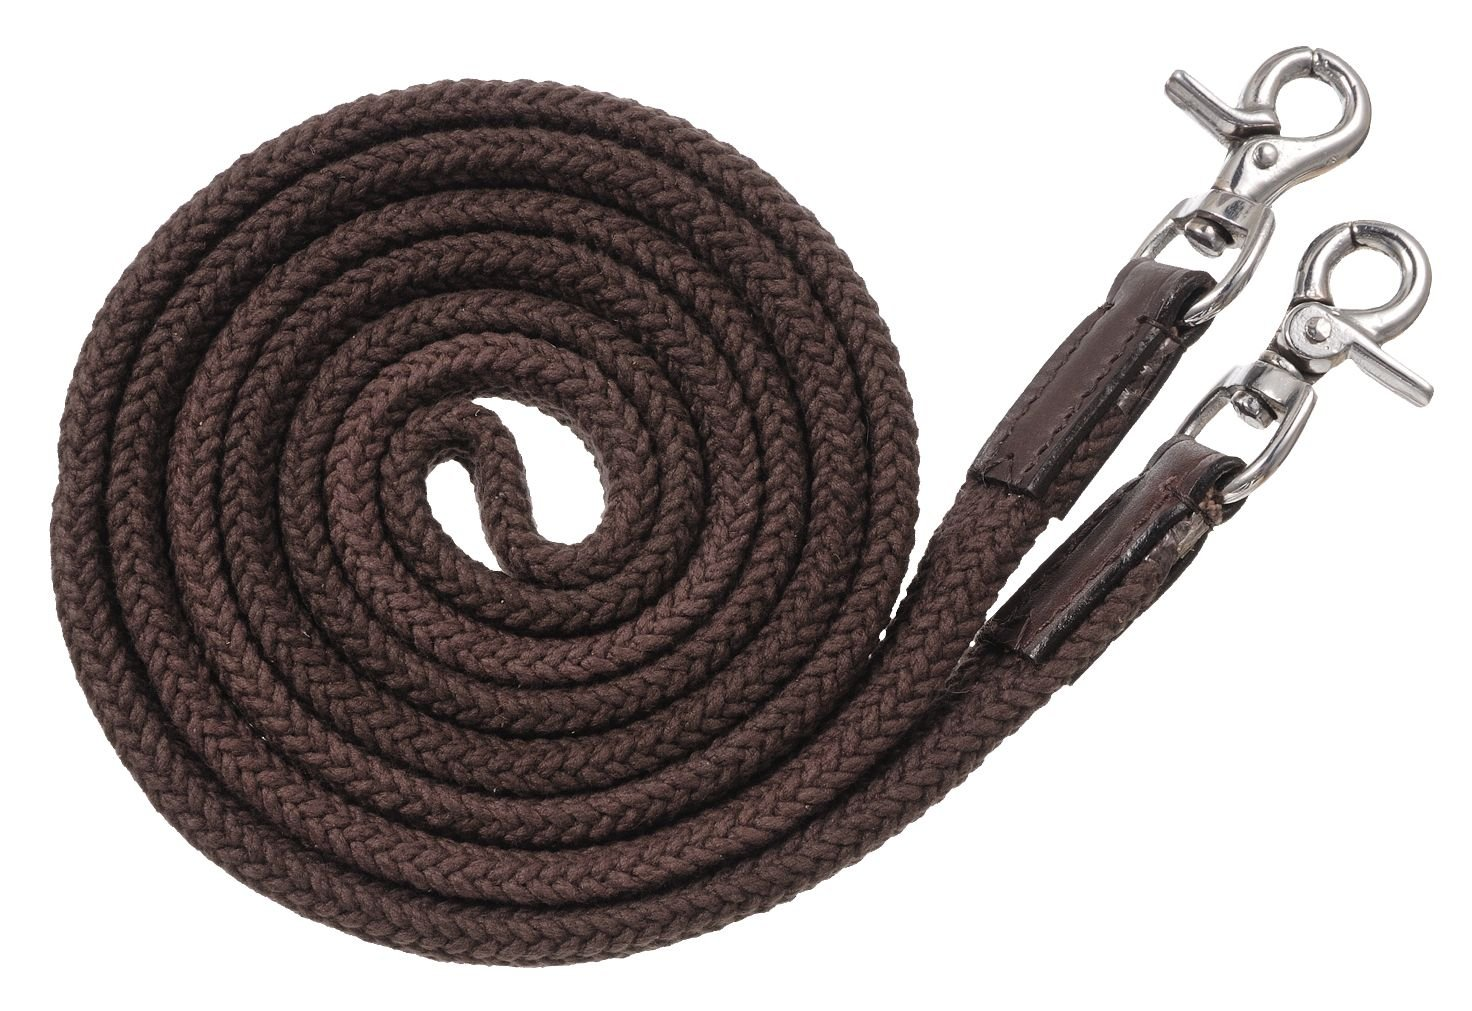 Tough 1 Royal King Deluxe Flat Roping/Contest Reins, Black JT International 54-910-2-0